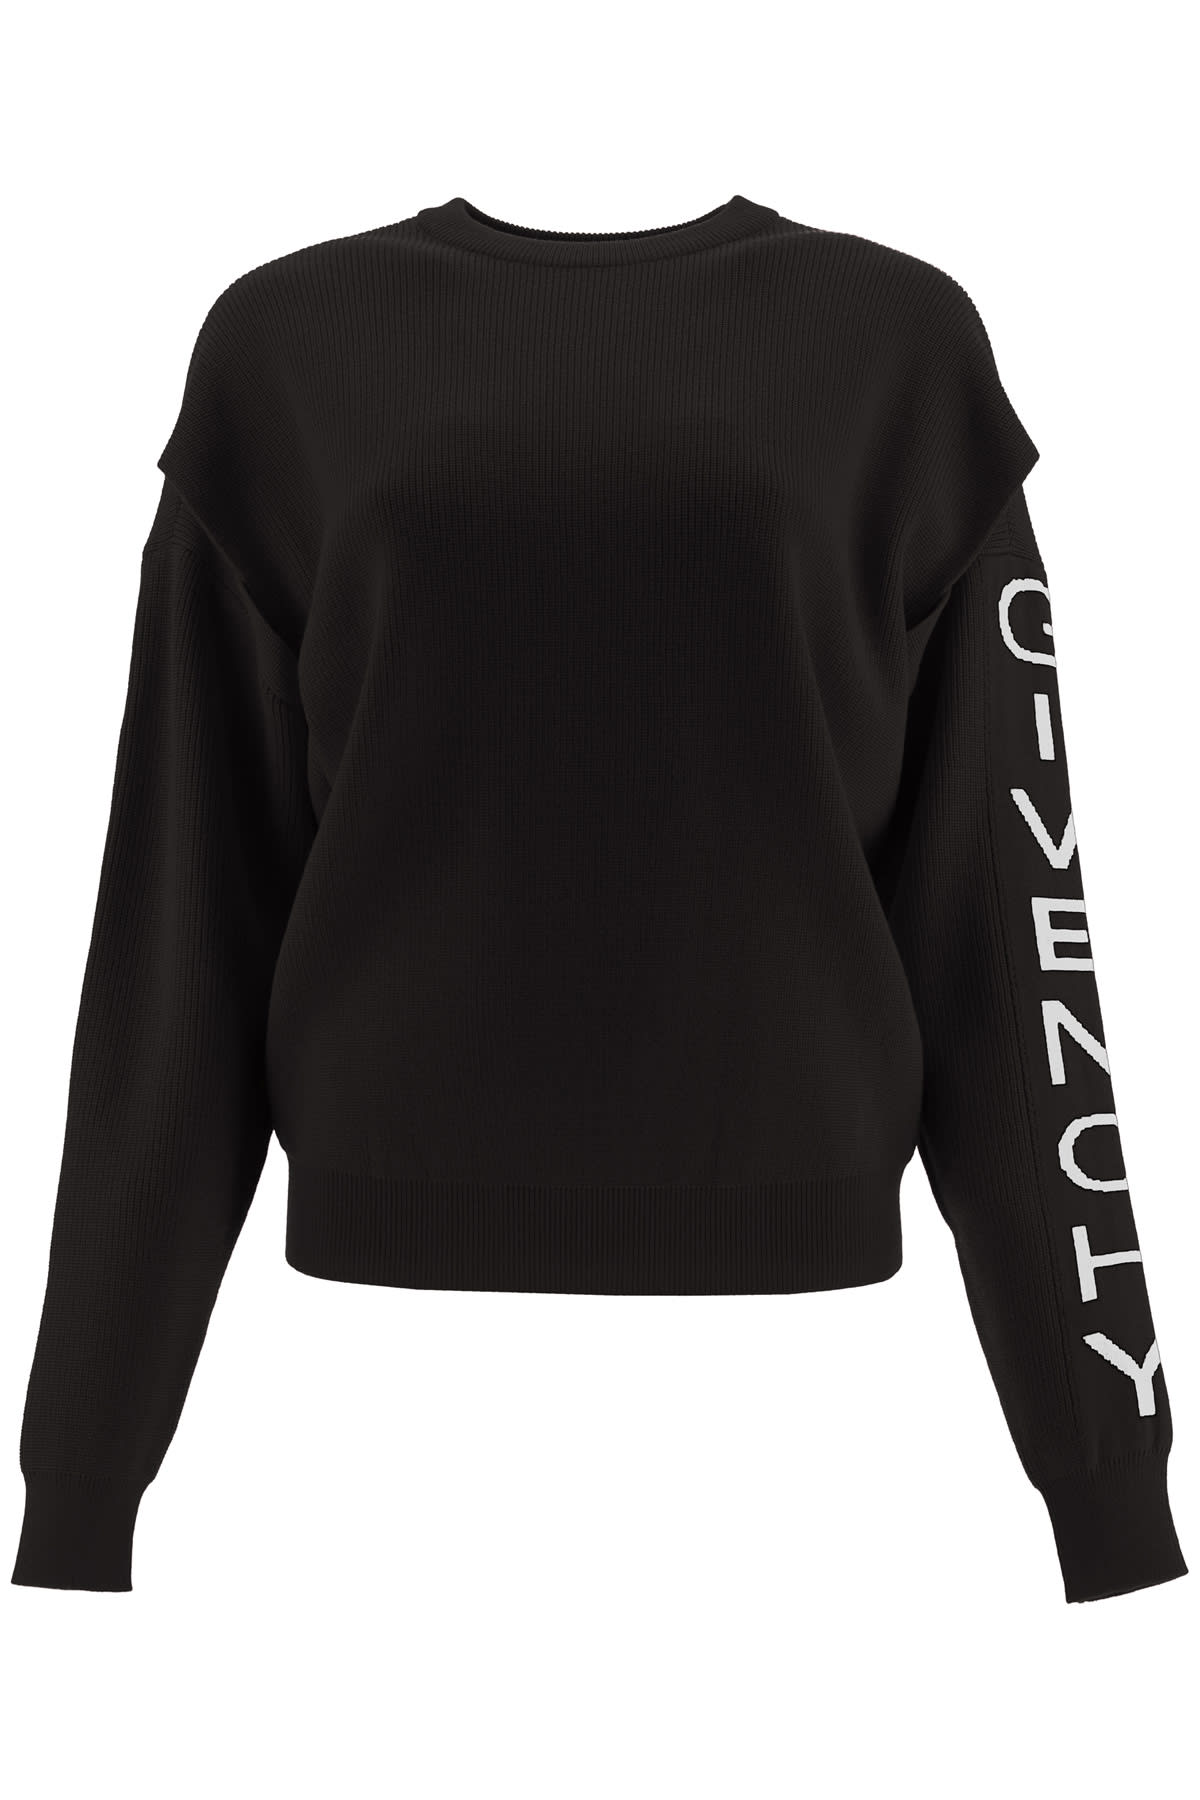 Givenchy MICRO RIBBED SWEATER WITH LOGO